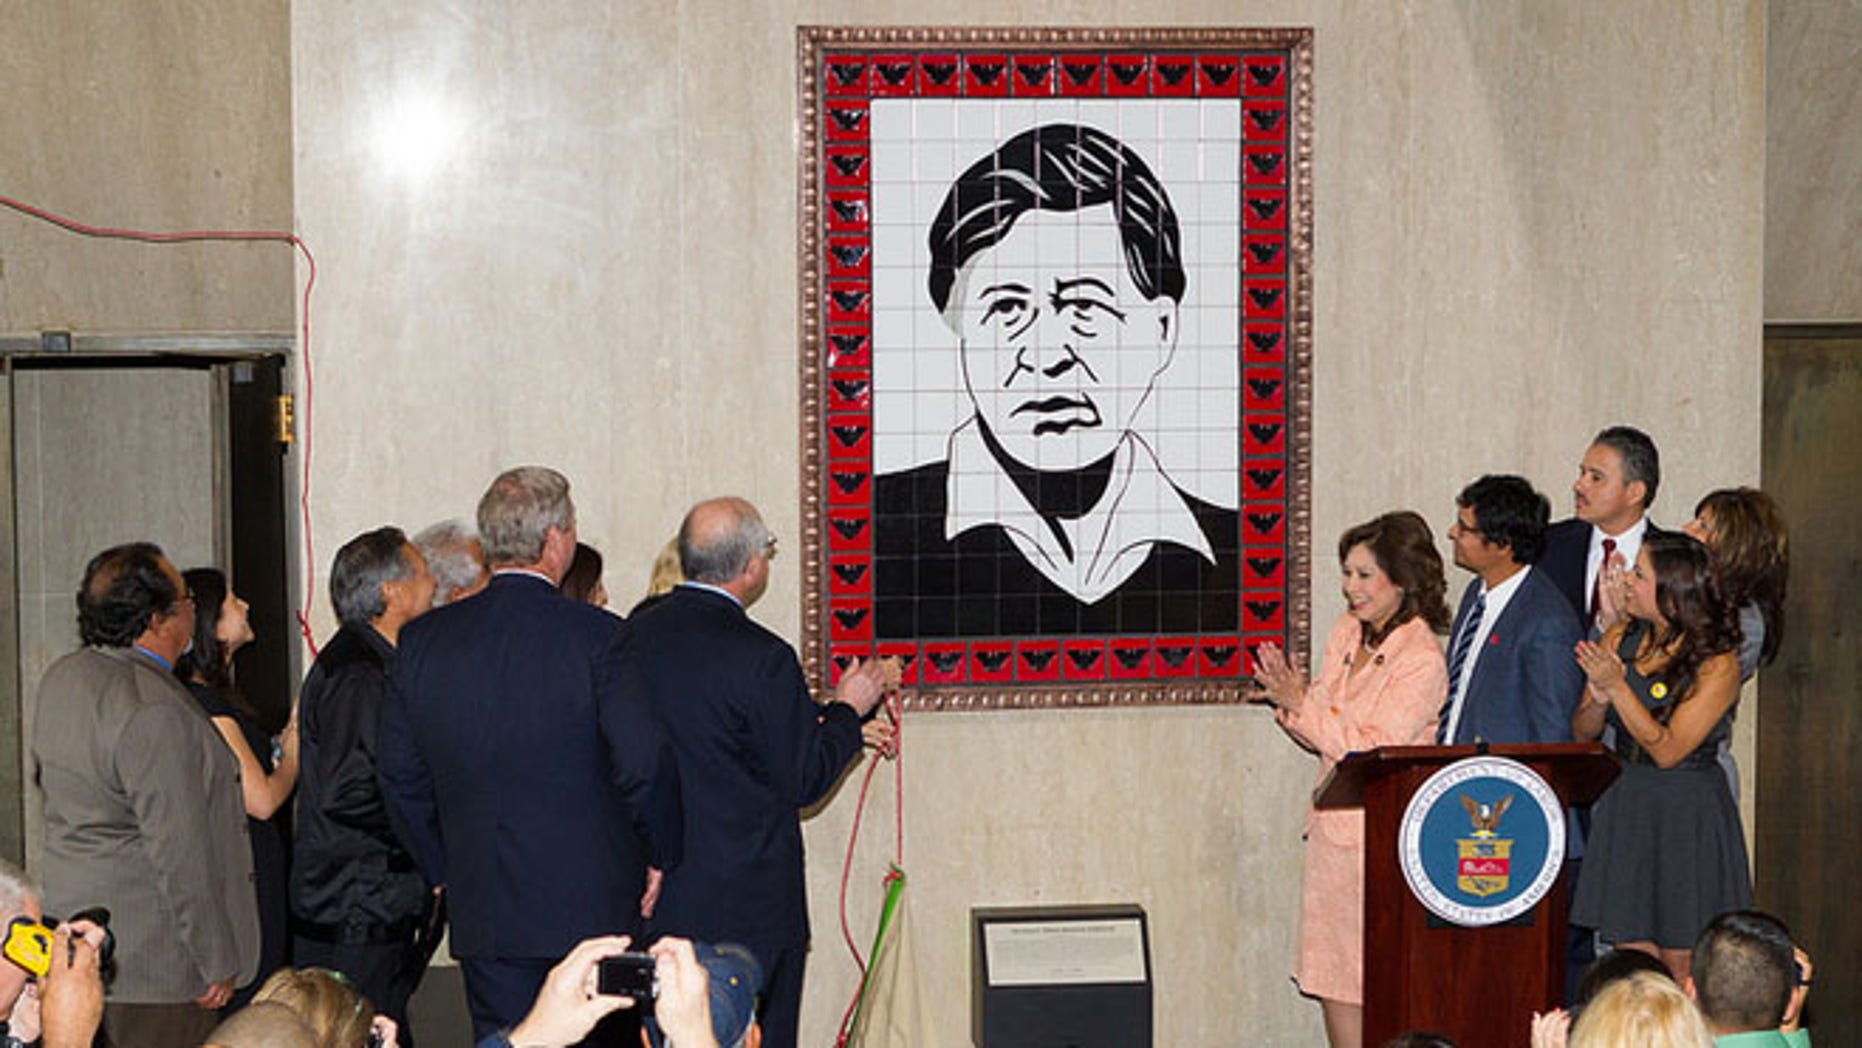 26 March 2012 - Washington, DC - Secretary of Labor Hilda L. Solis hosted the Induction of the Farm Worker Movement into the Labor Hall of Honor in the Great Hall and then proceeded to name and unveil the Cesar E. Chavez Memorial Auditorium. Family members from the Chavez family were on hand as well as Secretary of the Interior Ken Salazar and Secretary of Agriculture Tom Vilsack.